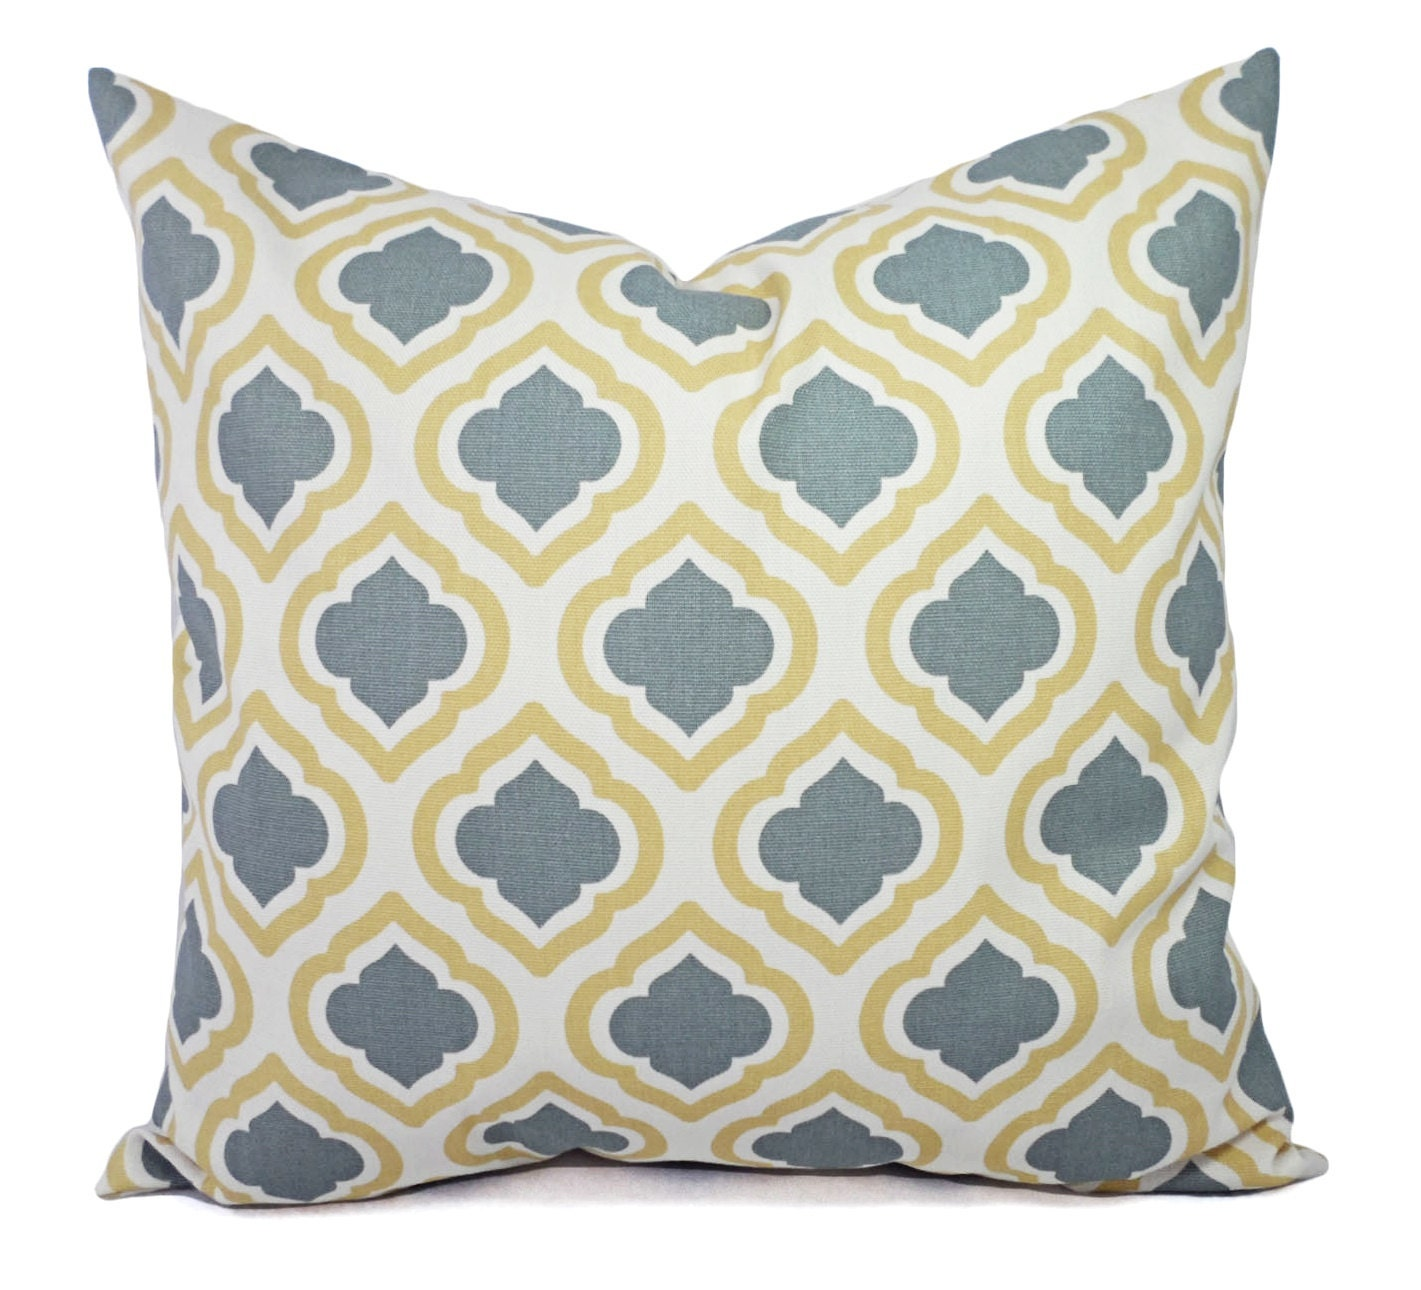 Two Yellow and Grey Pillow Covers Saffron Yellow Grey and